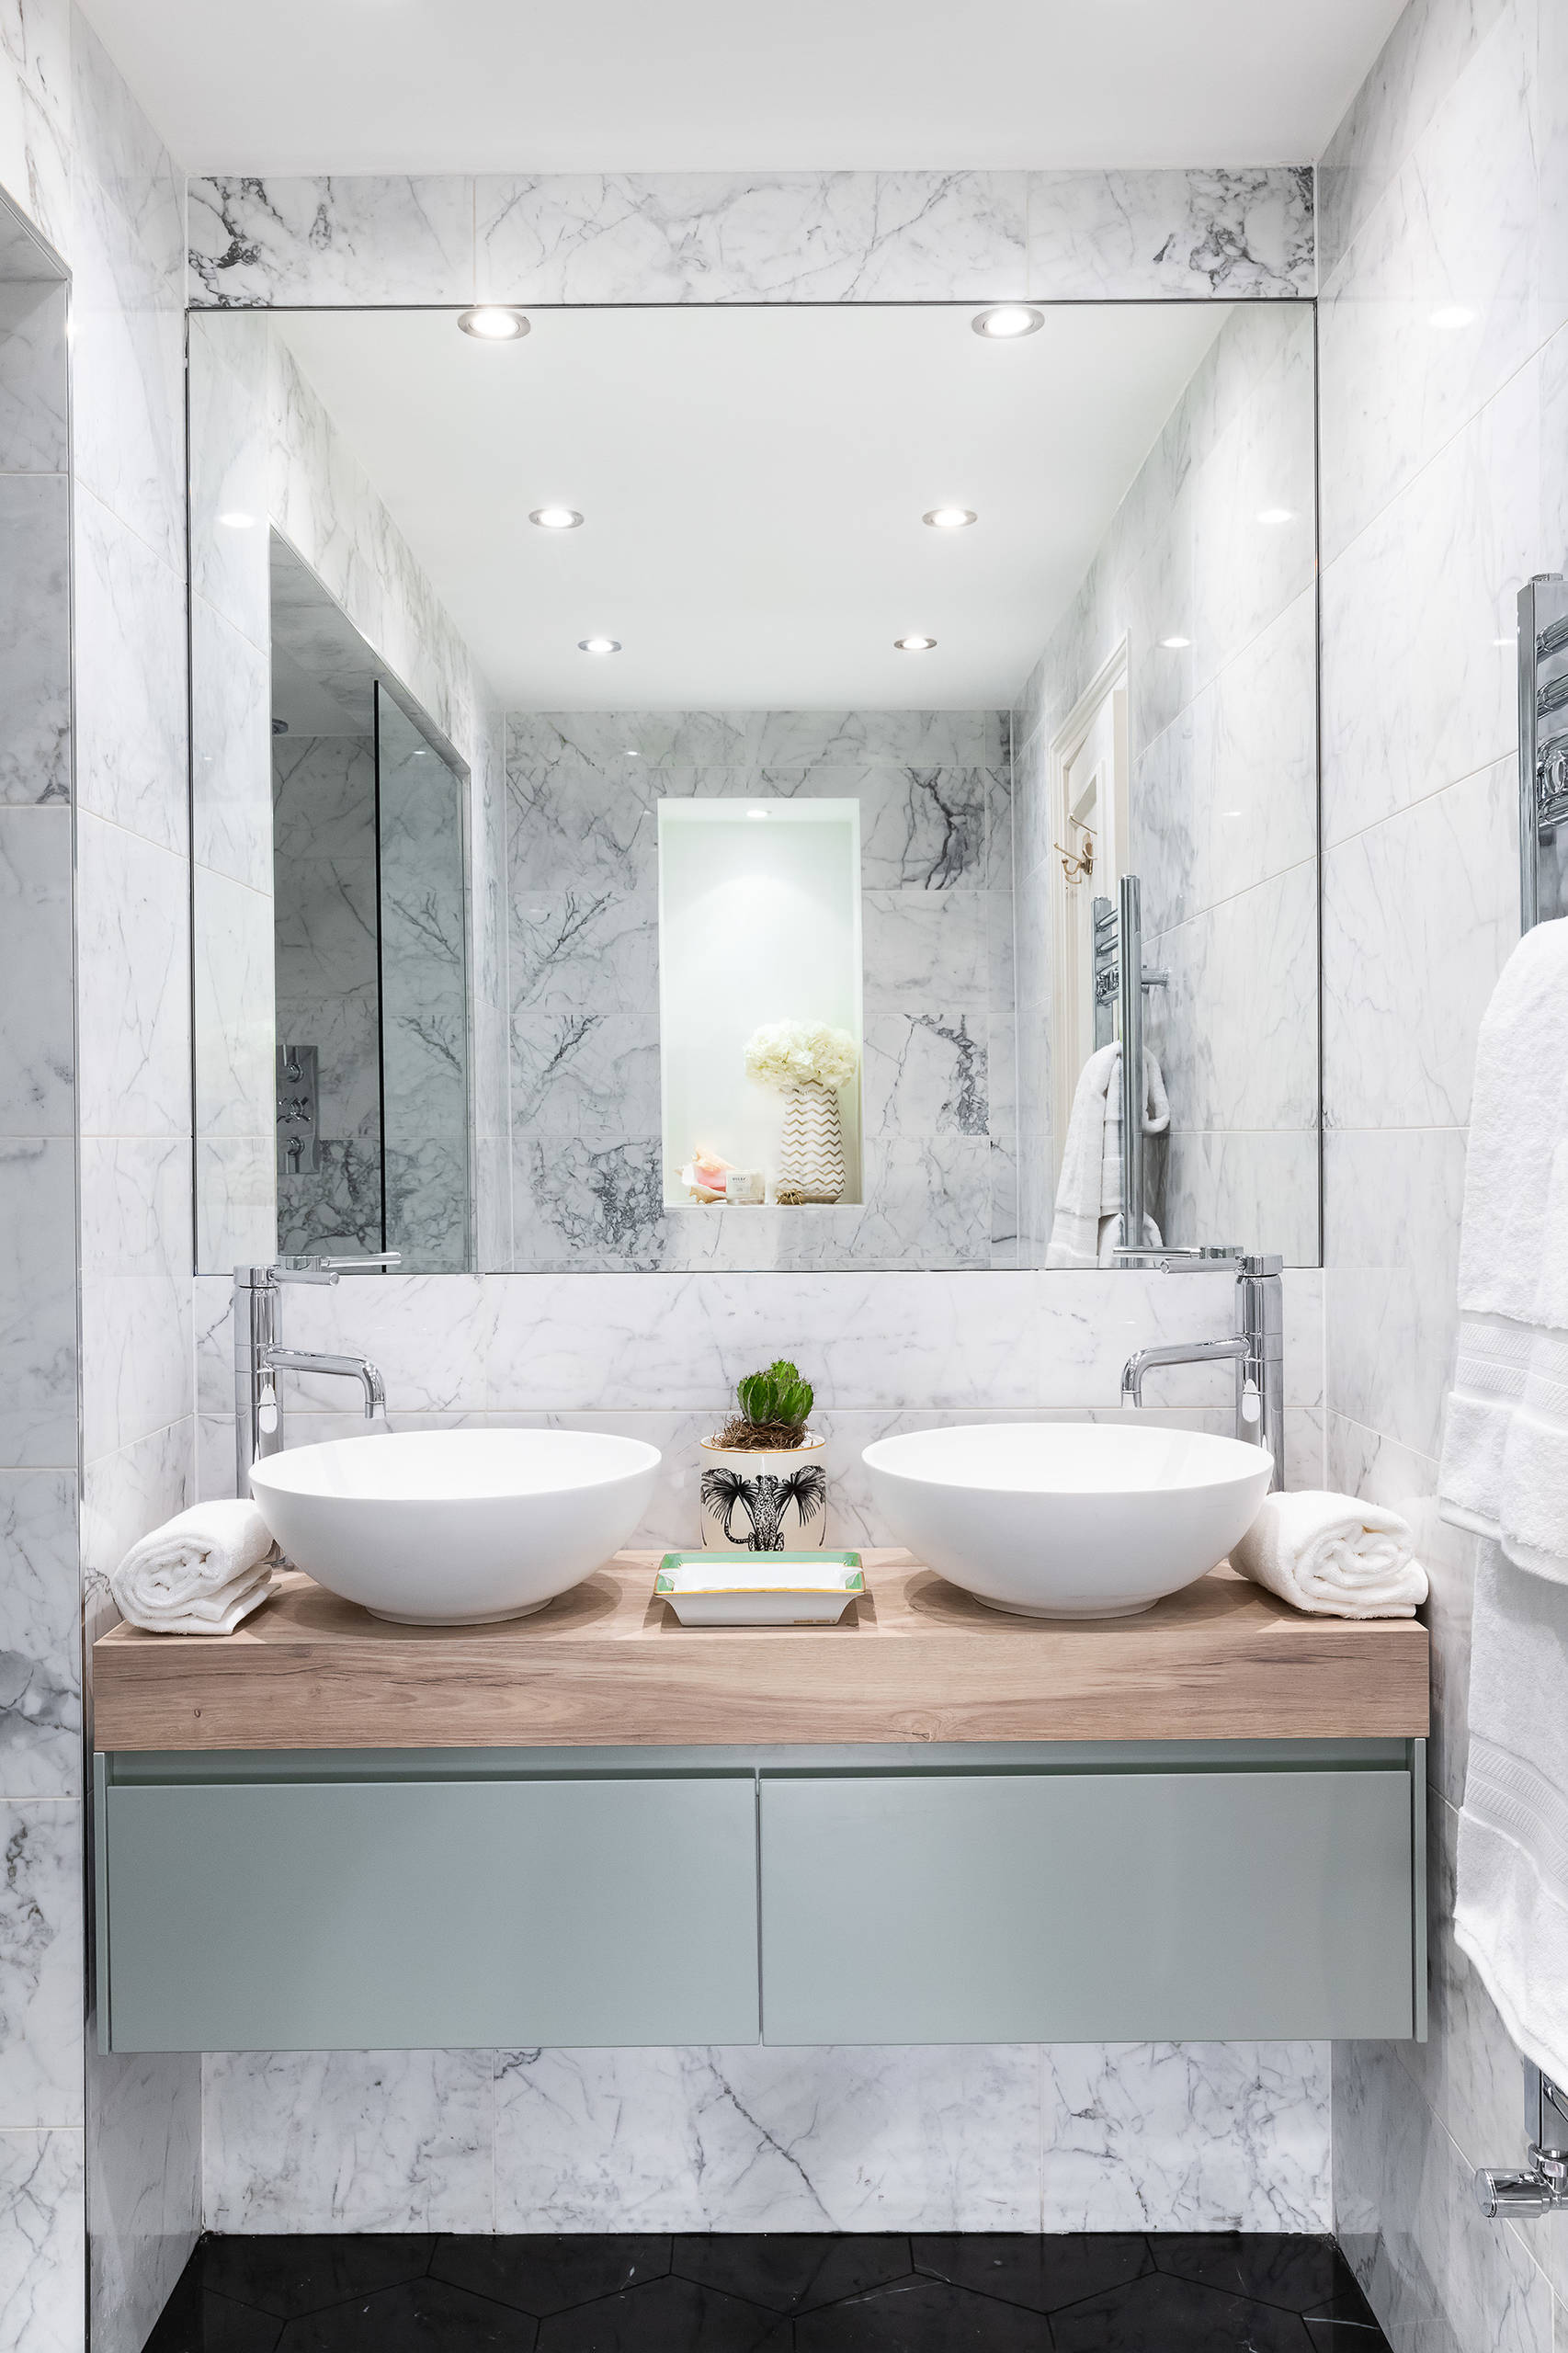 75 Beautiful Bathroom With Wood Countertops Pictures Ideas December 2020 Houzz